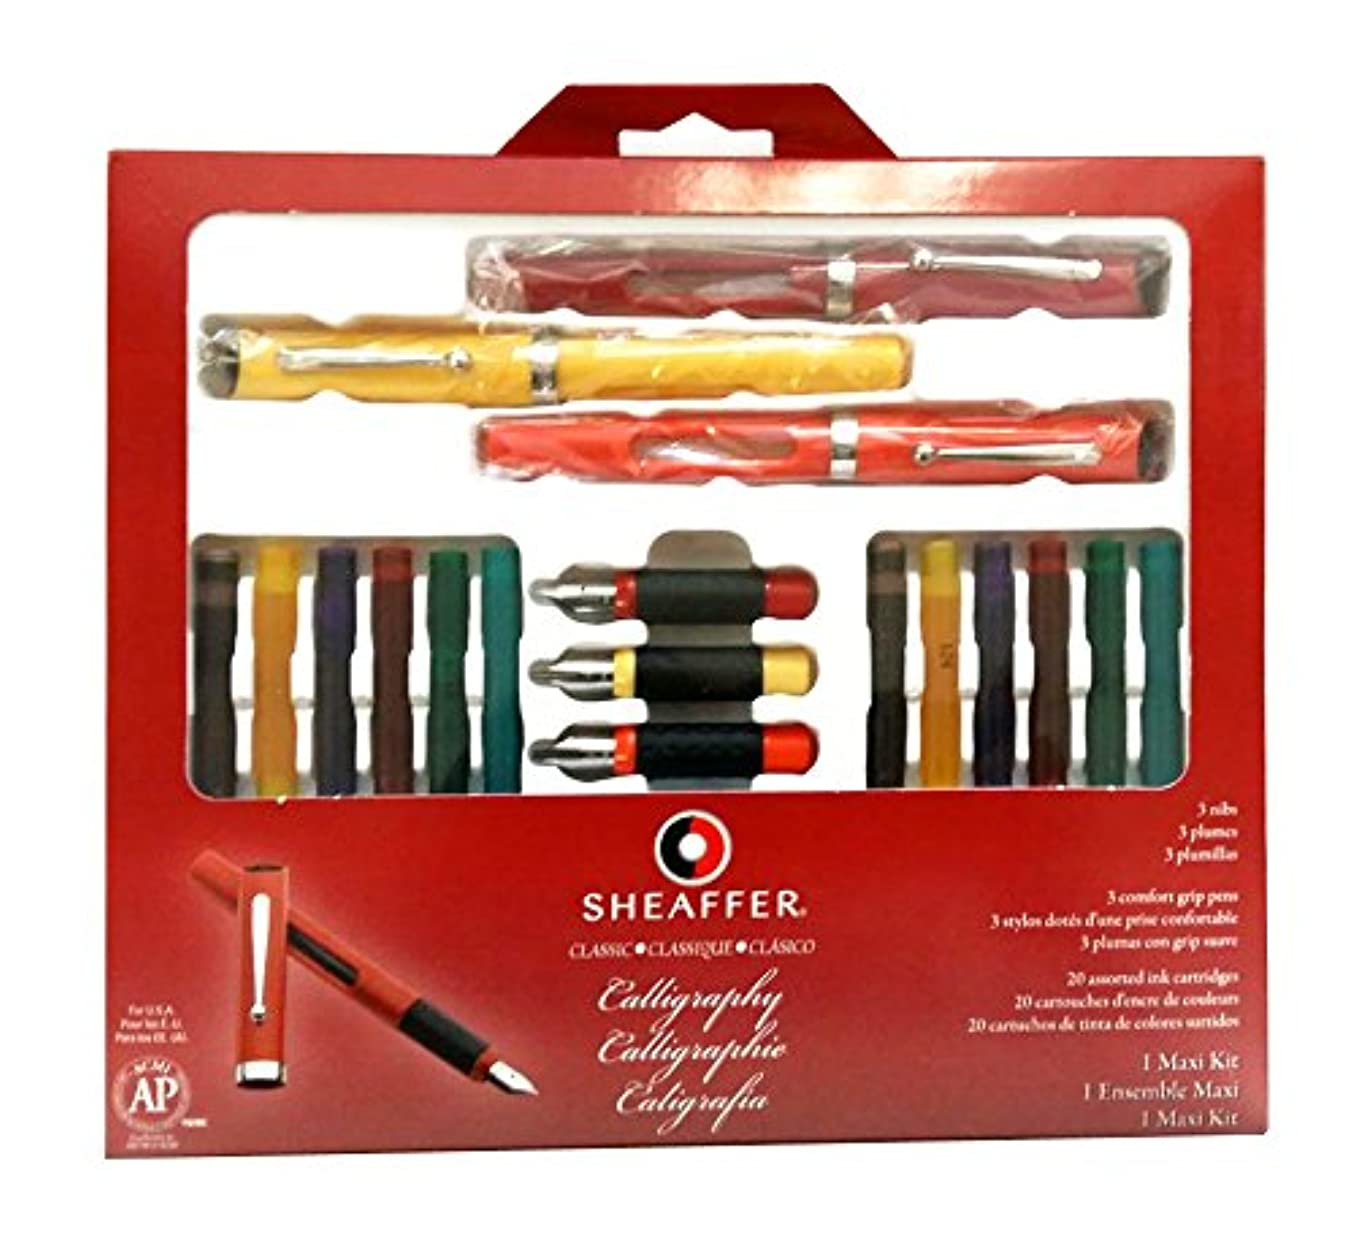 Sheaffer(R) Calligraphy Kit, Set Of 7